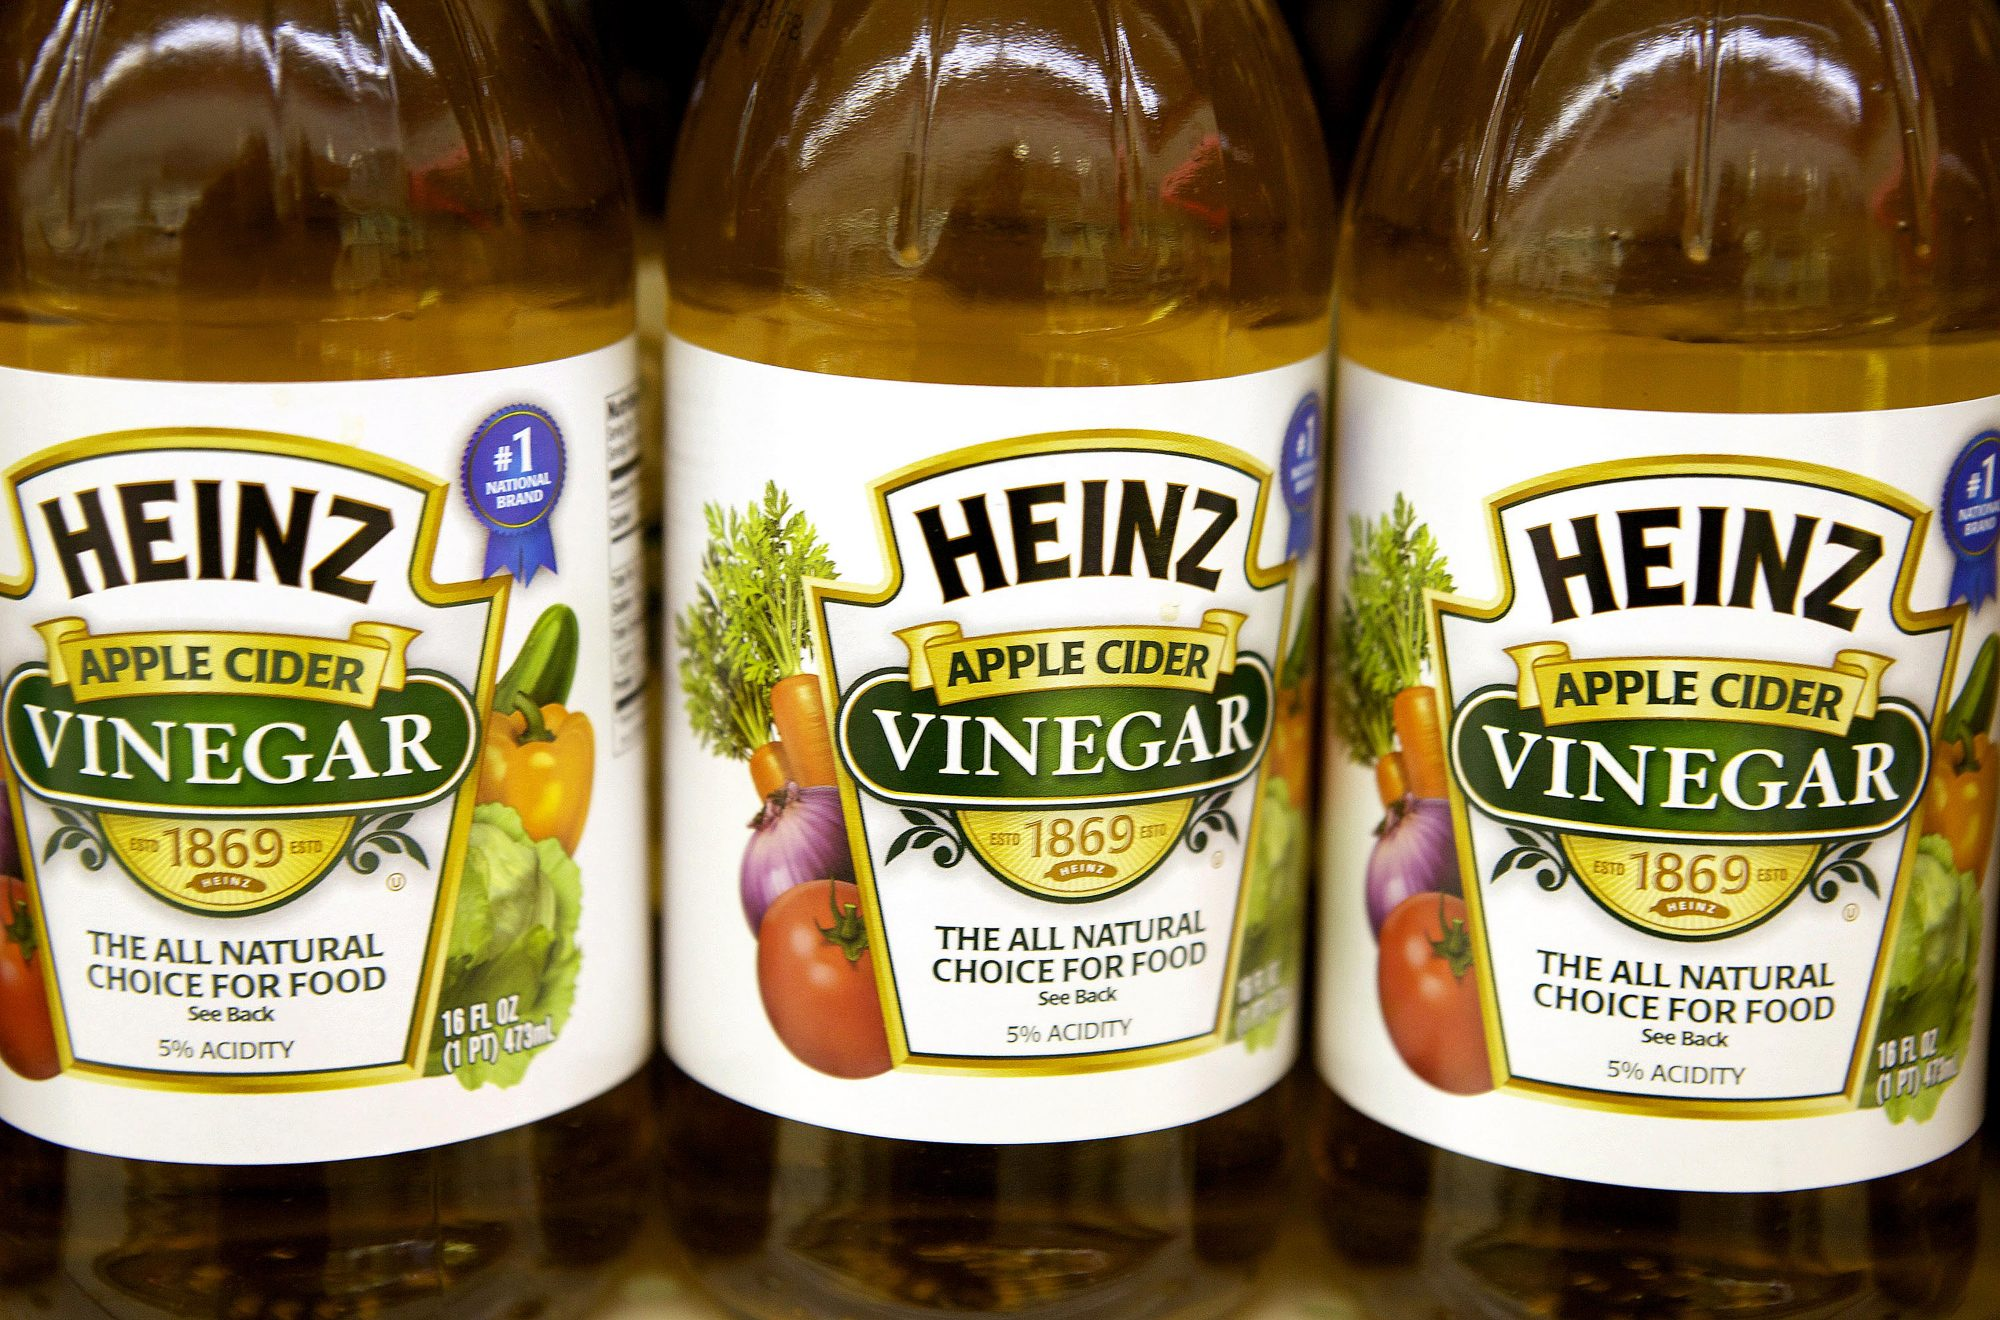 Berkshire Hathaway to Buy H.J. Heinz for About $23 Billion With 3G Capital